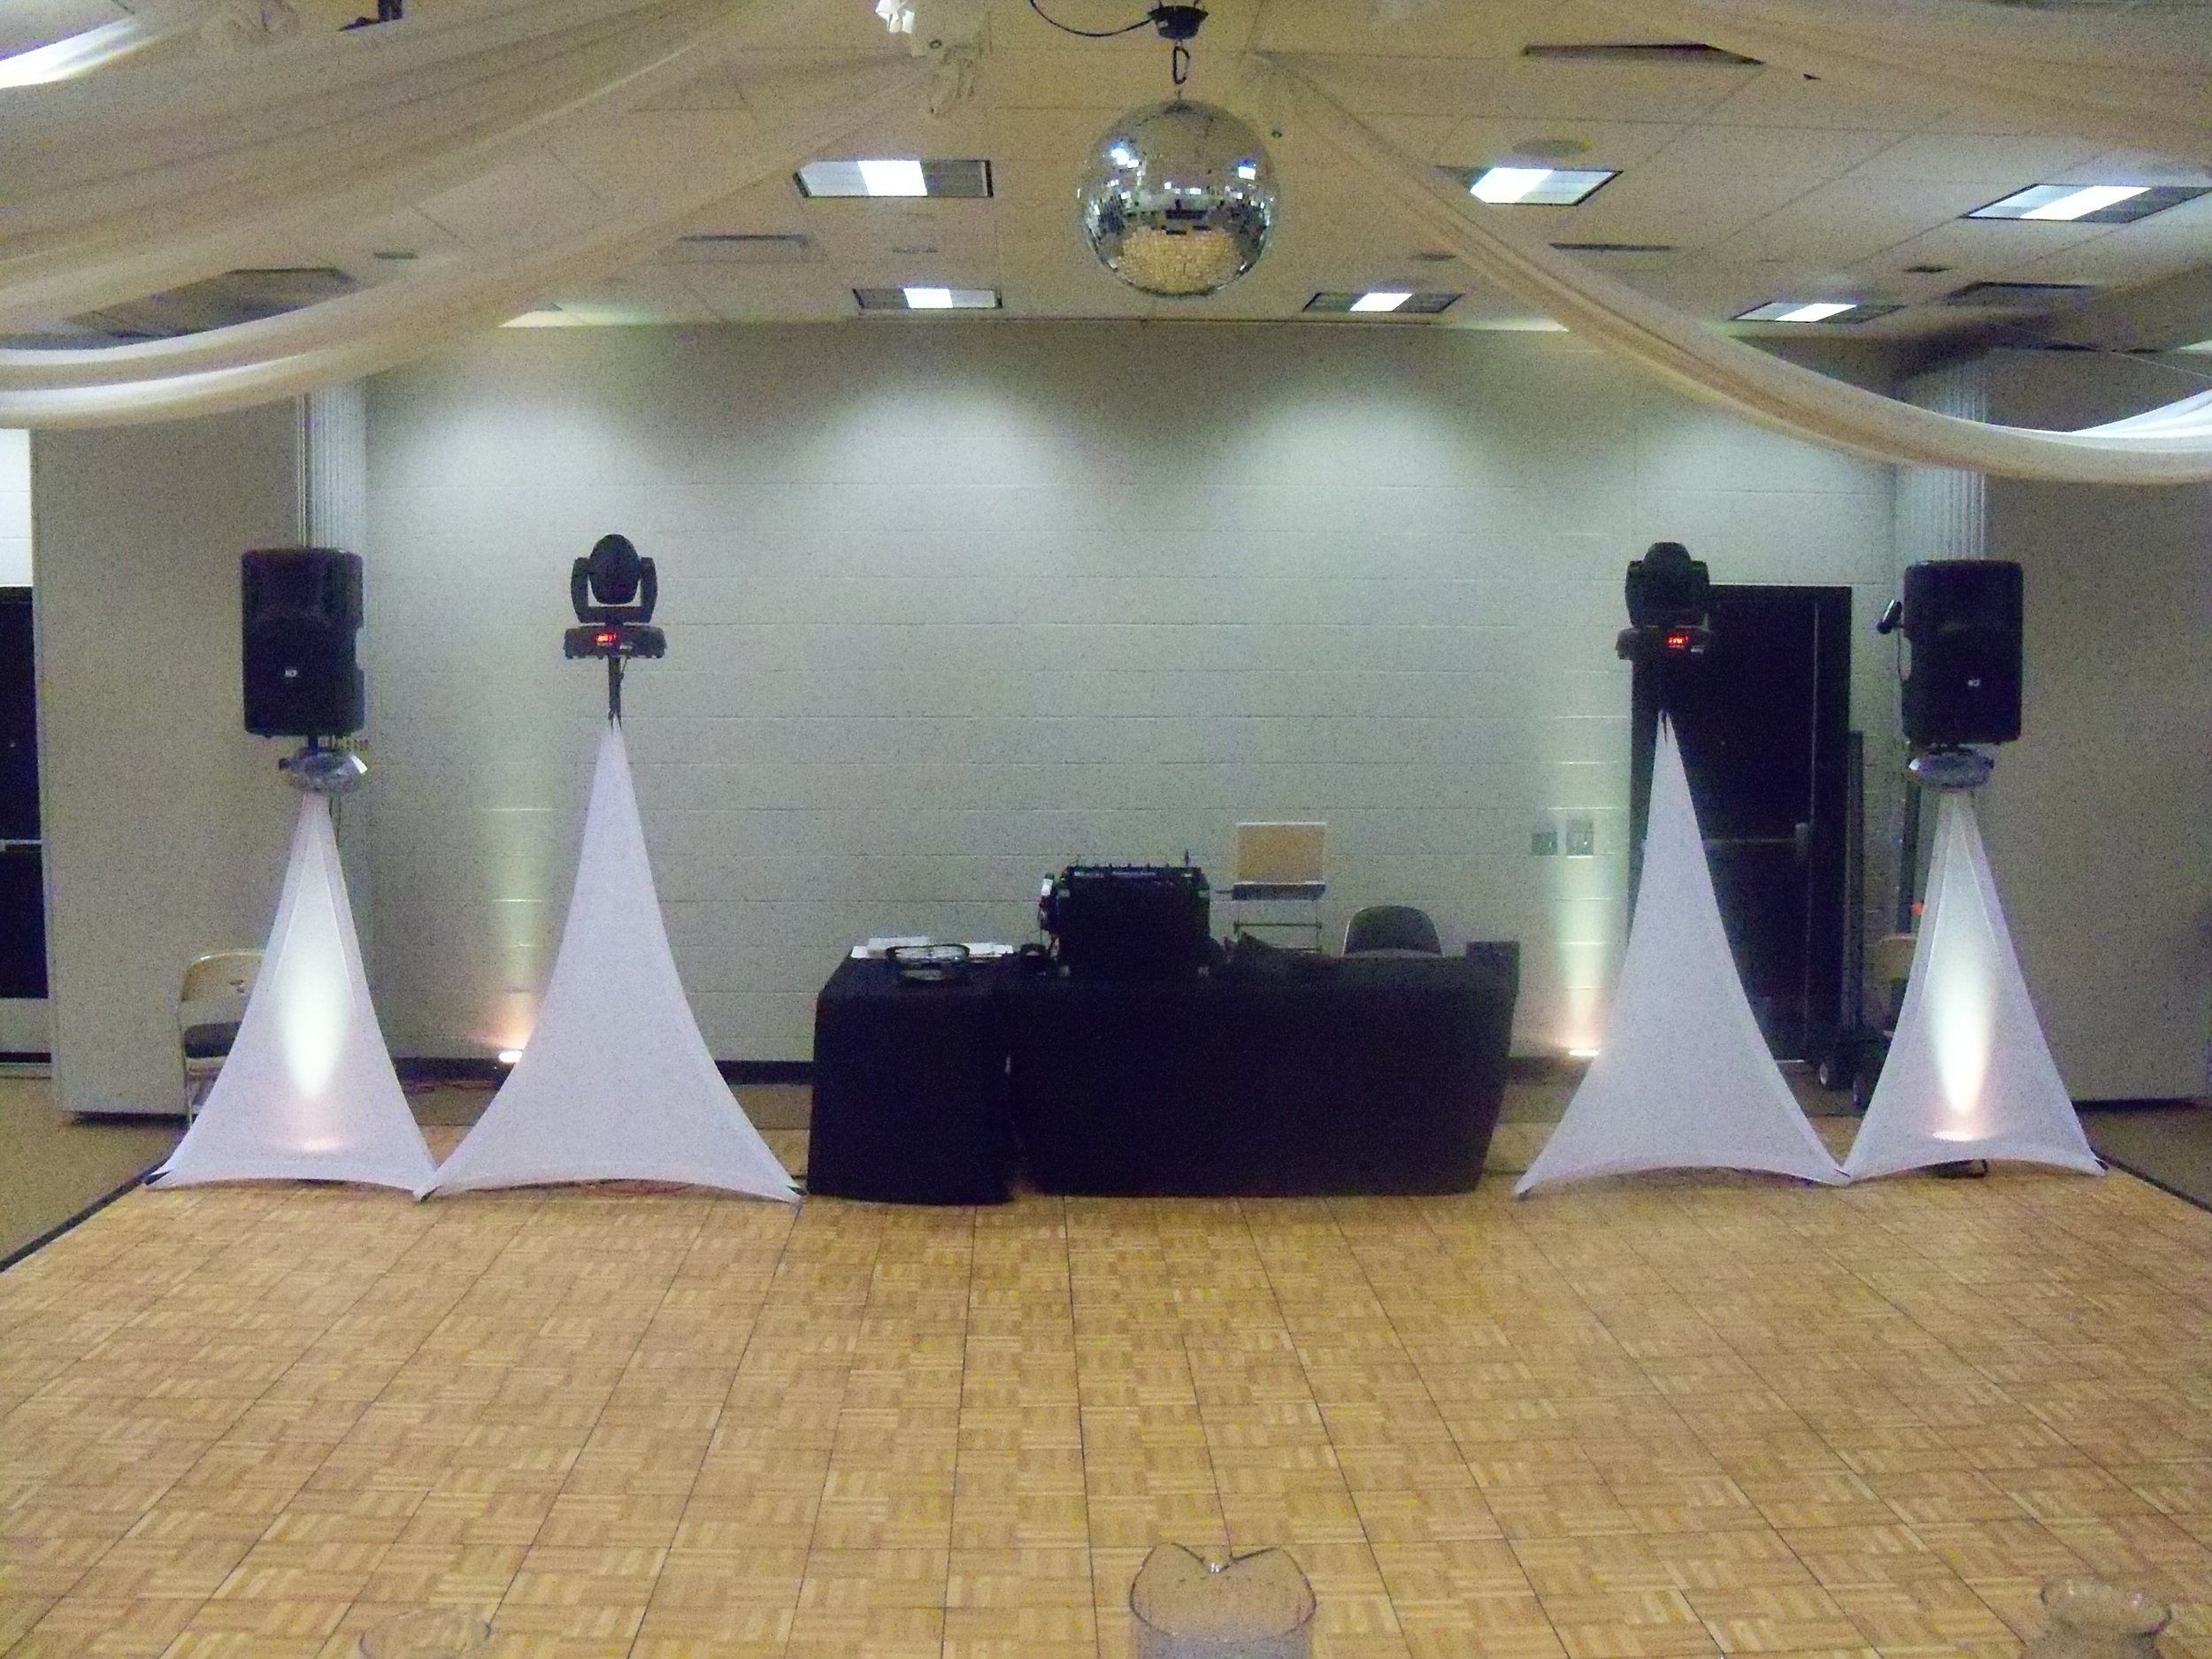 dj service - Packages starting at $800.00Equipment and set up will vary depending on number of guests and size of room.